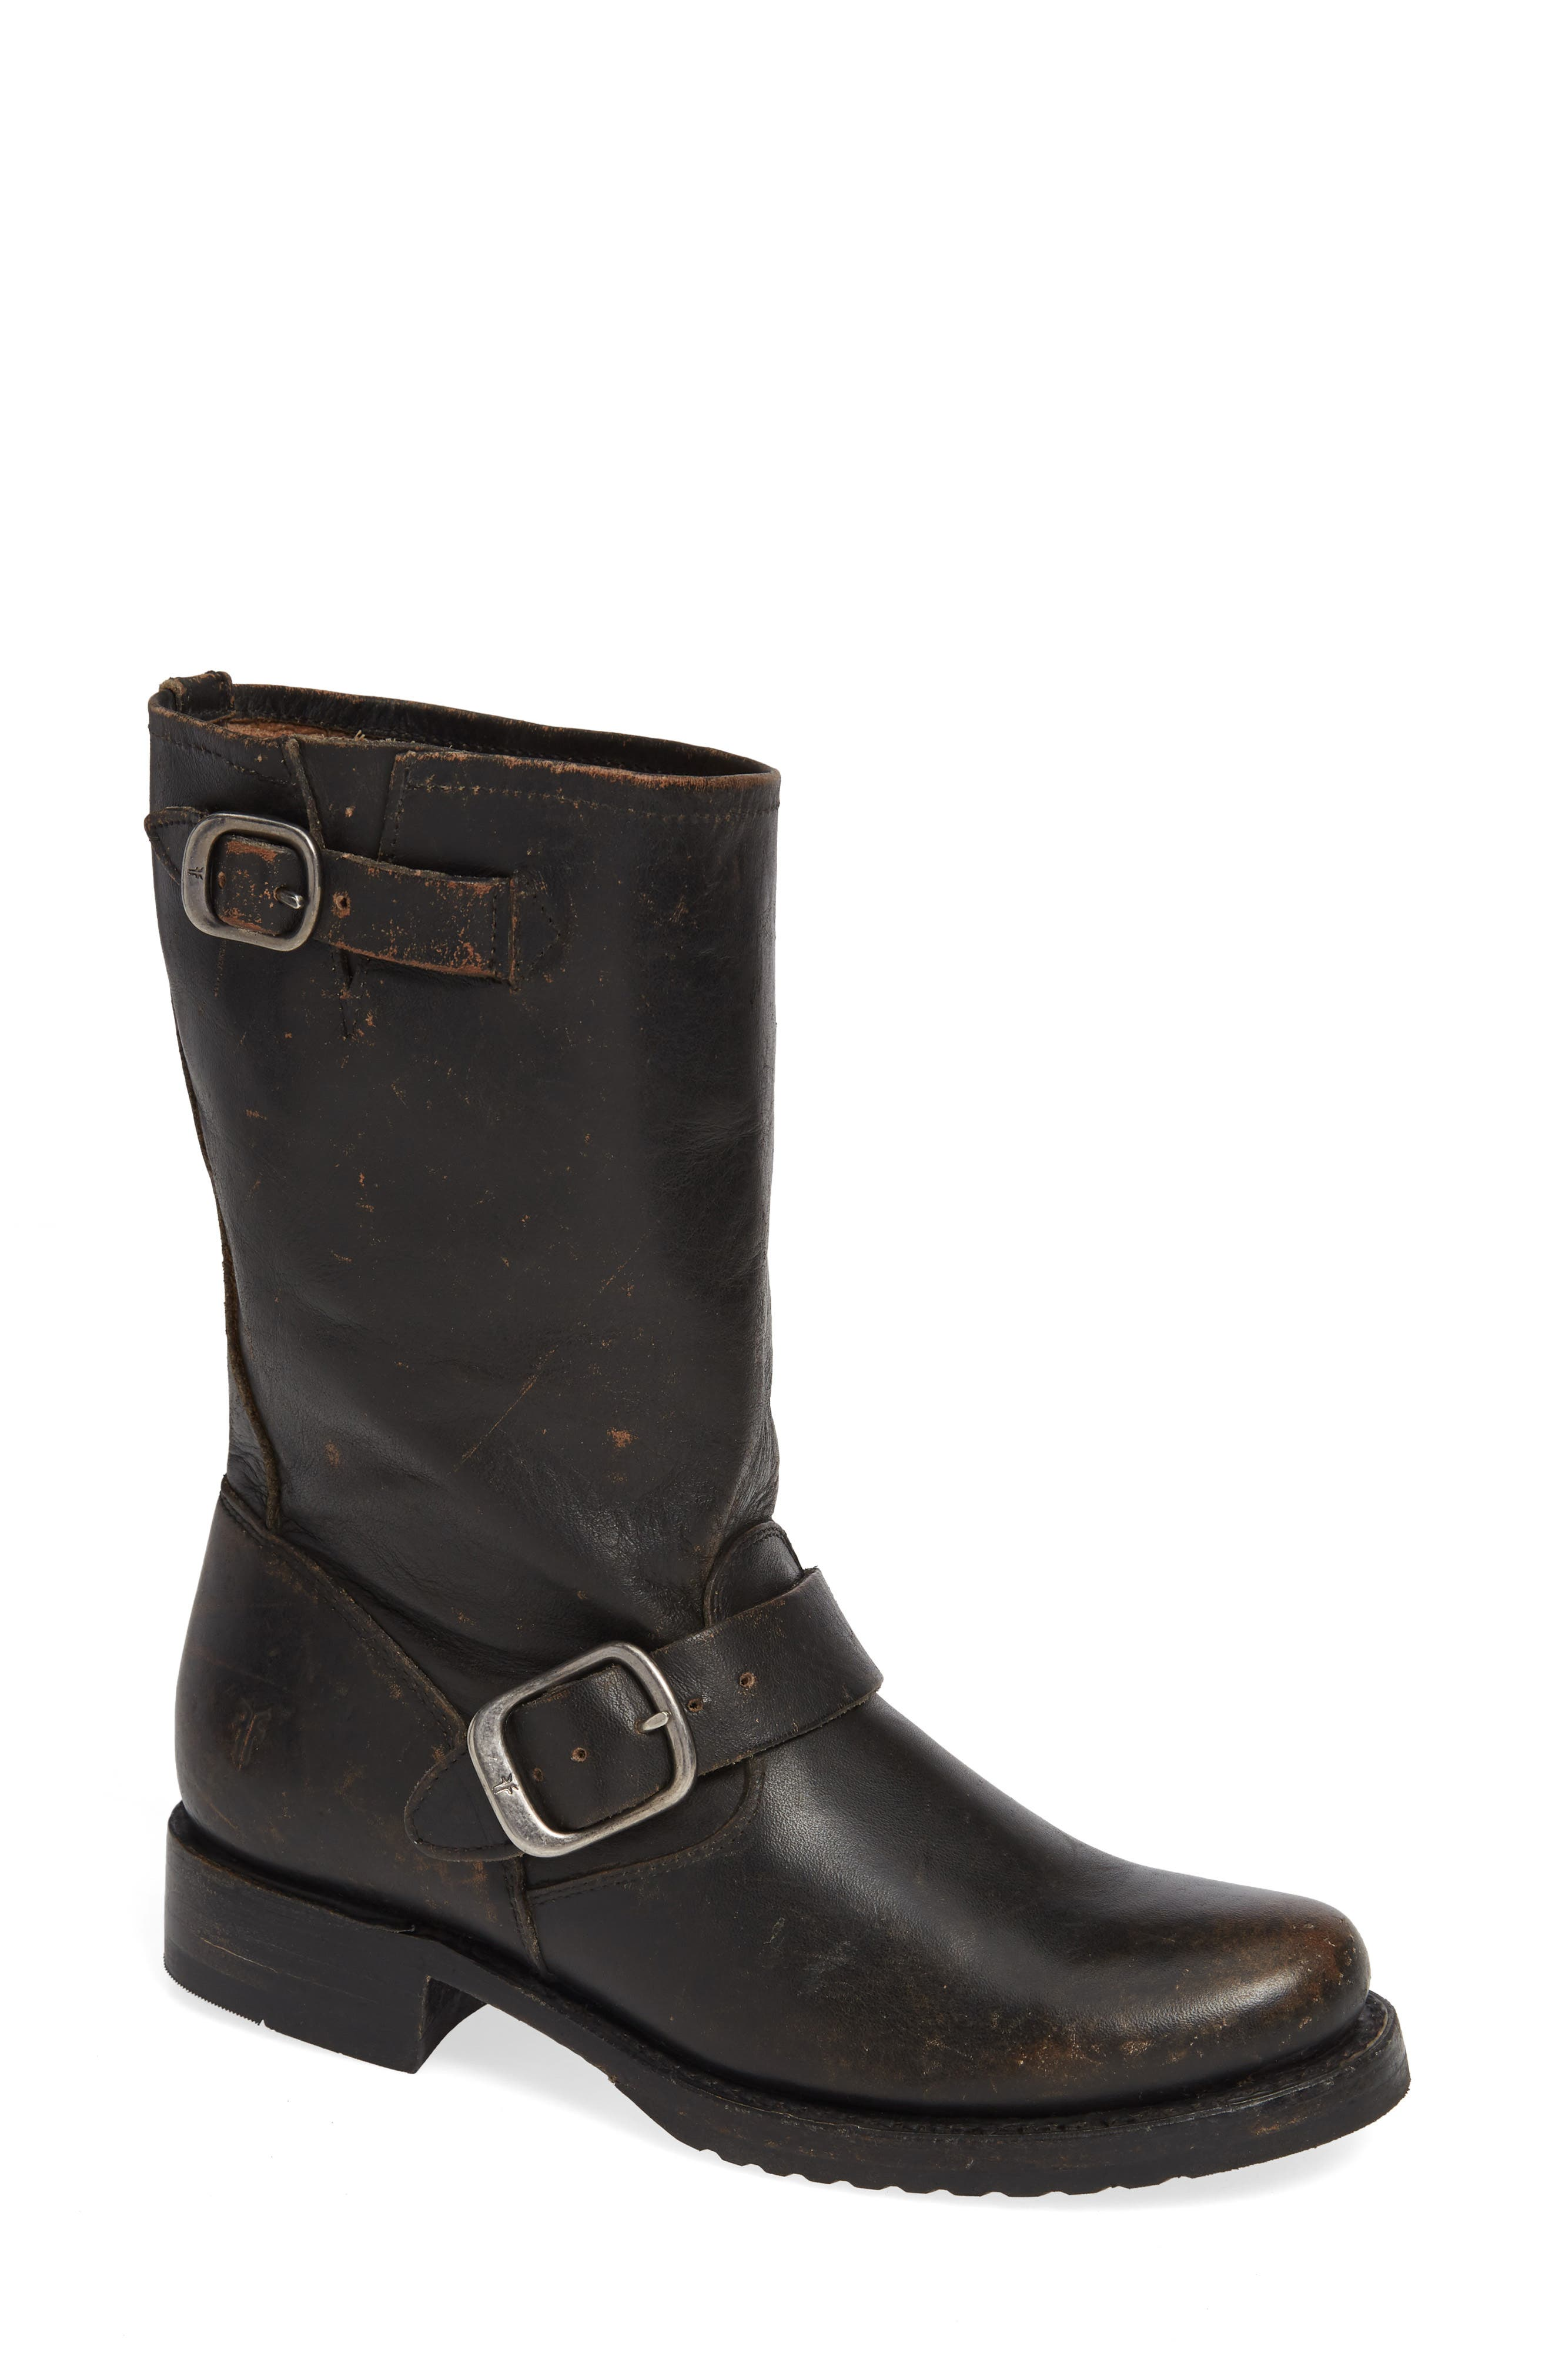 'Veronica' Short Boot,                             Main thumbnail 1, color,                             BLACK BRUSH OFF LEATHER